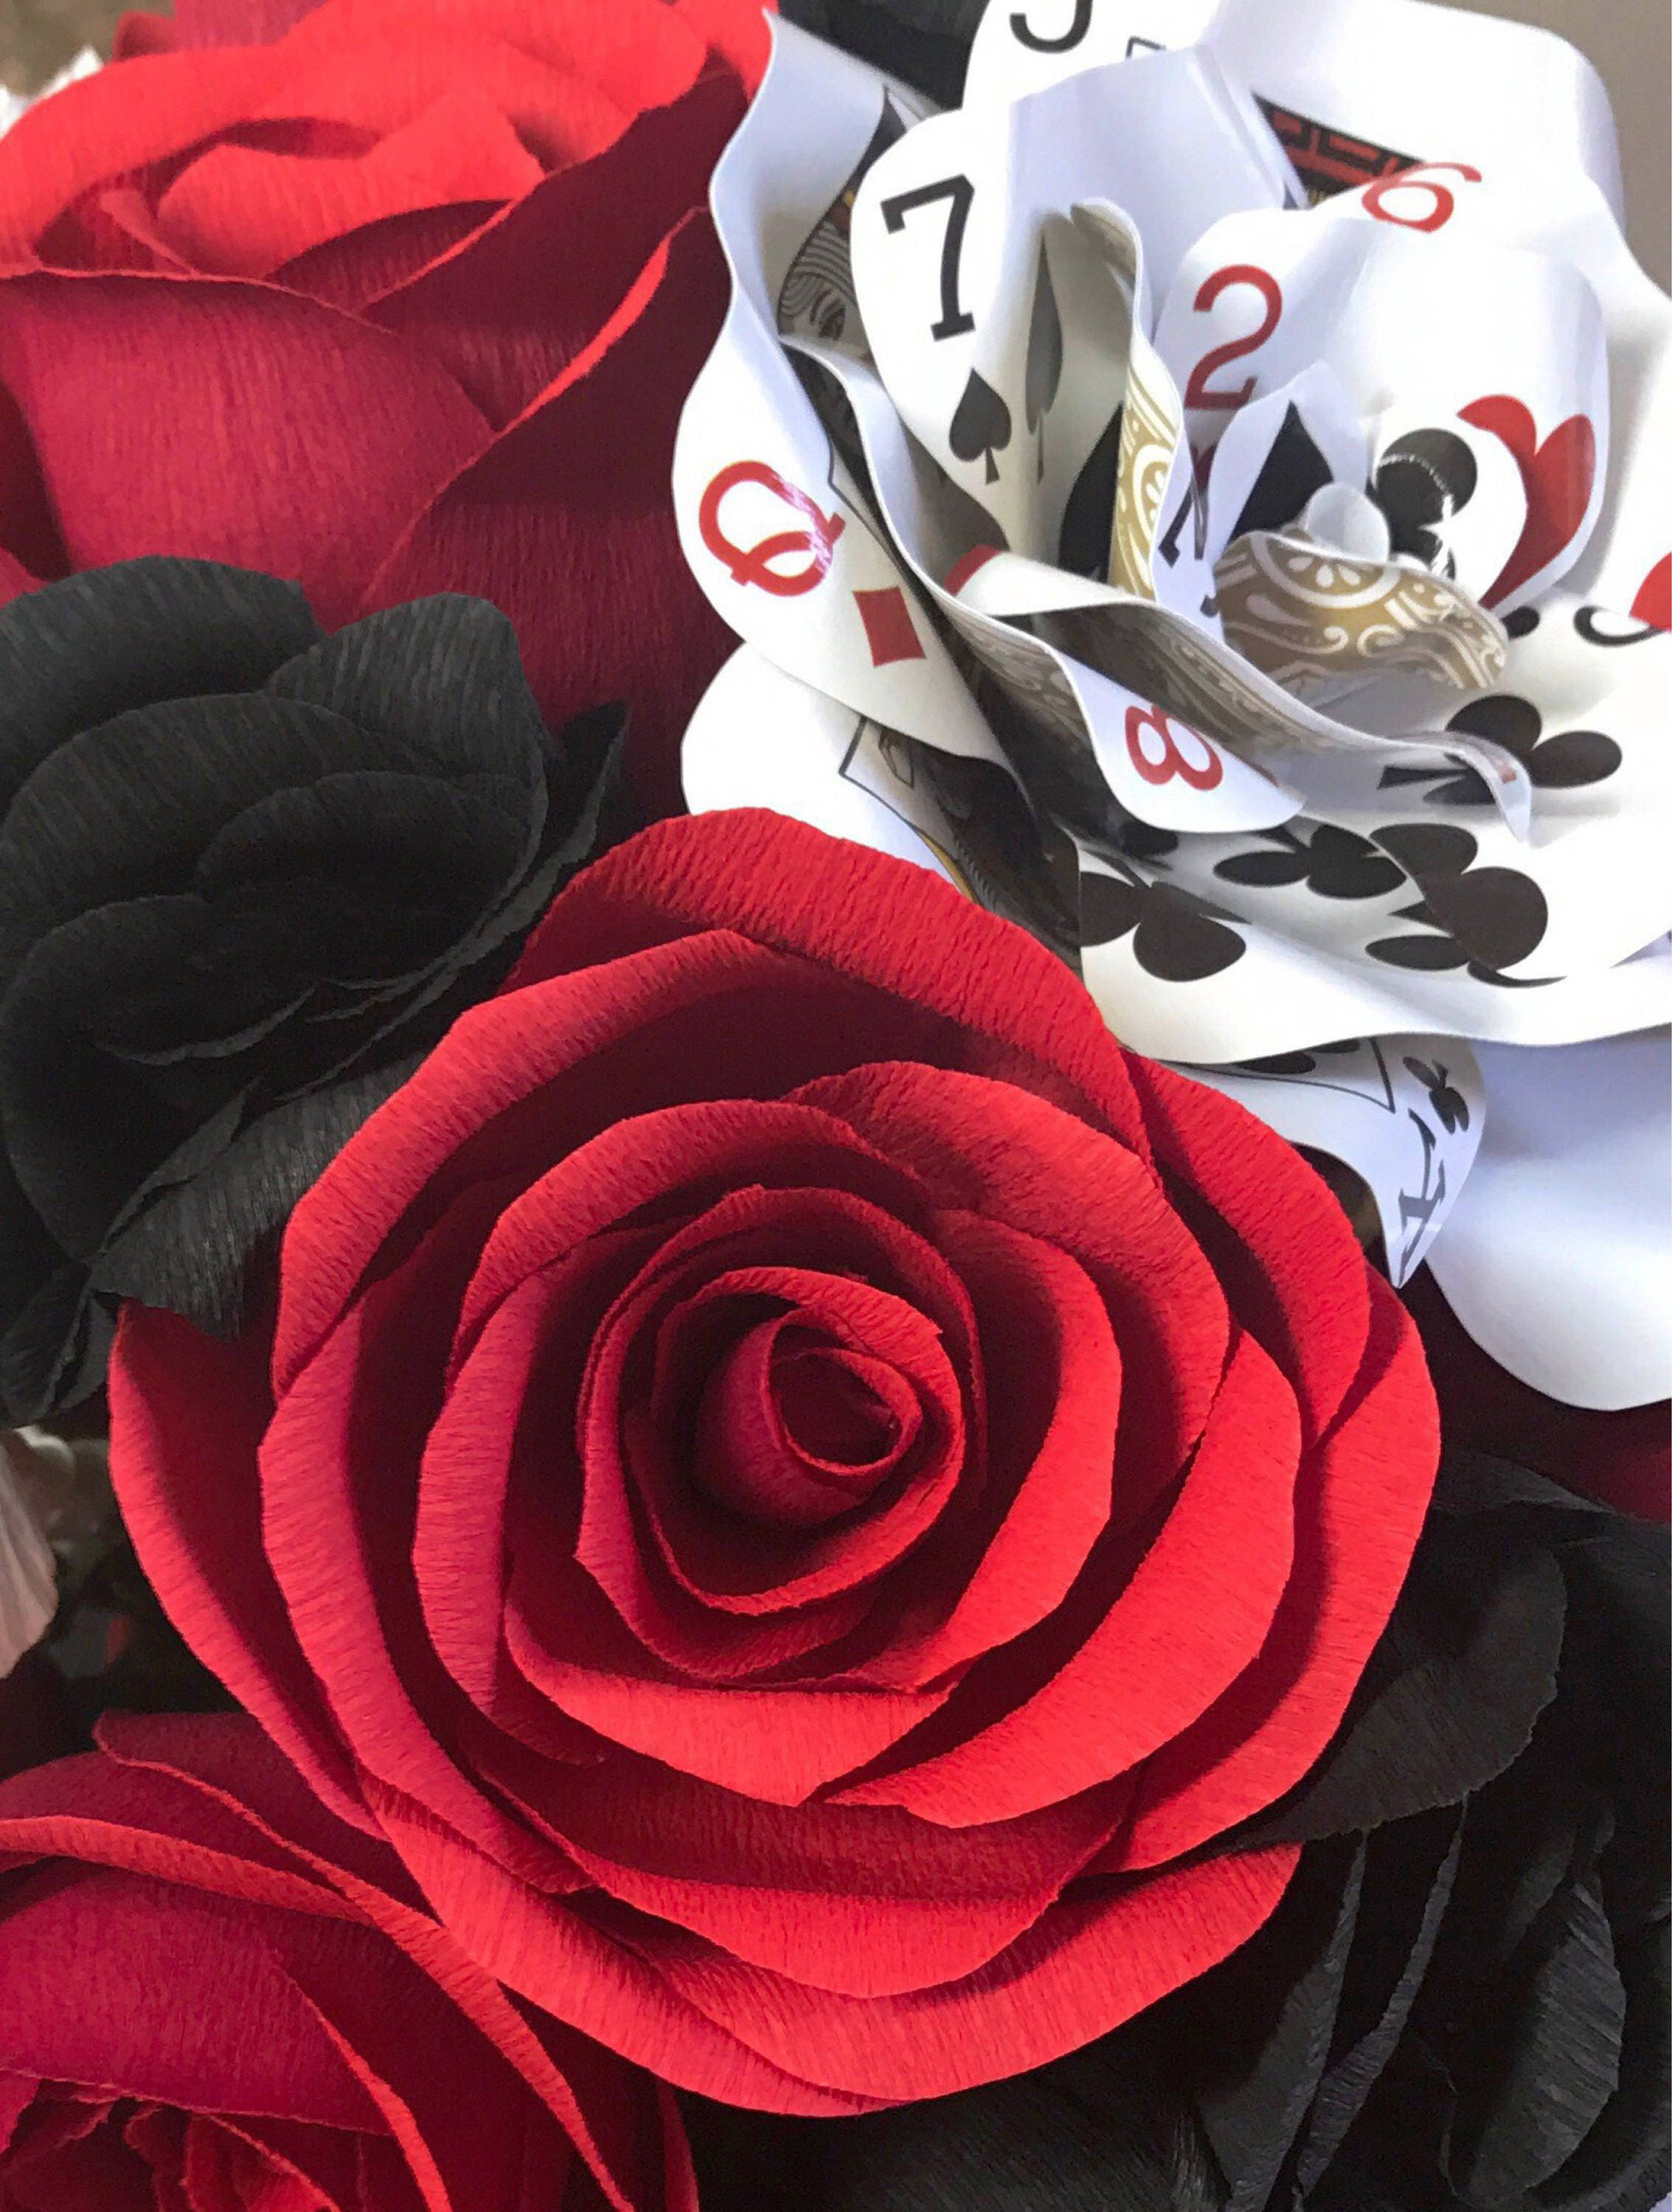 Dozen paper roses 6 crepe paper flowers 6 playing card flowers dozen paper roses 6 crepe paper flowers 6 playing card flowers vegas reviewsmspy